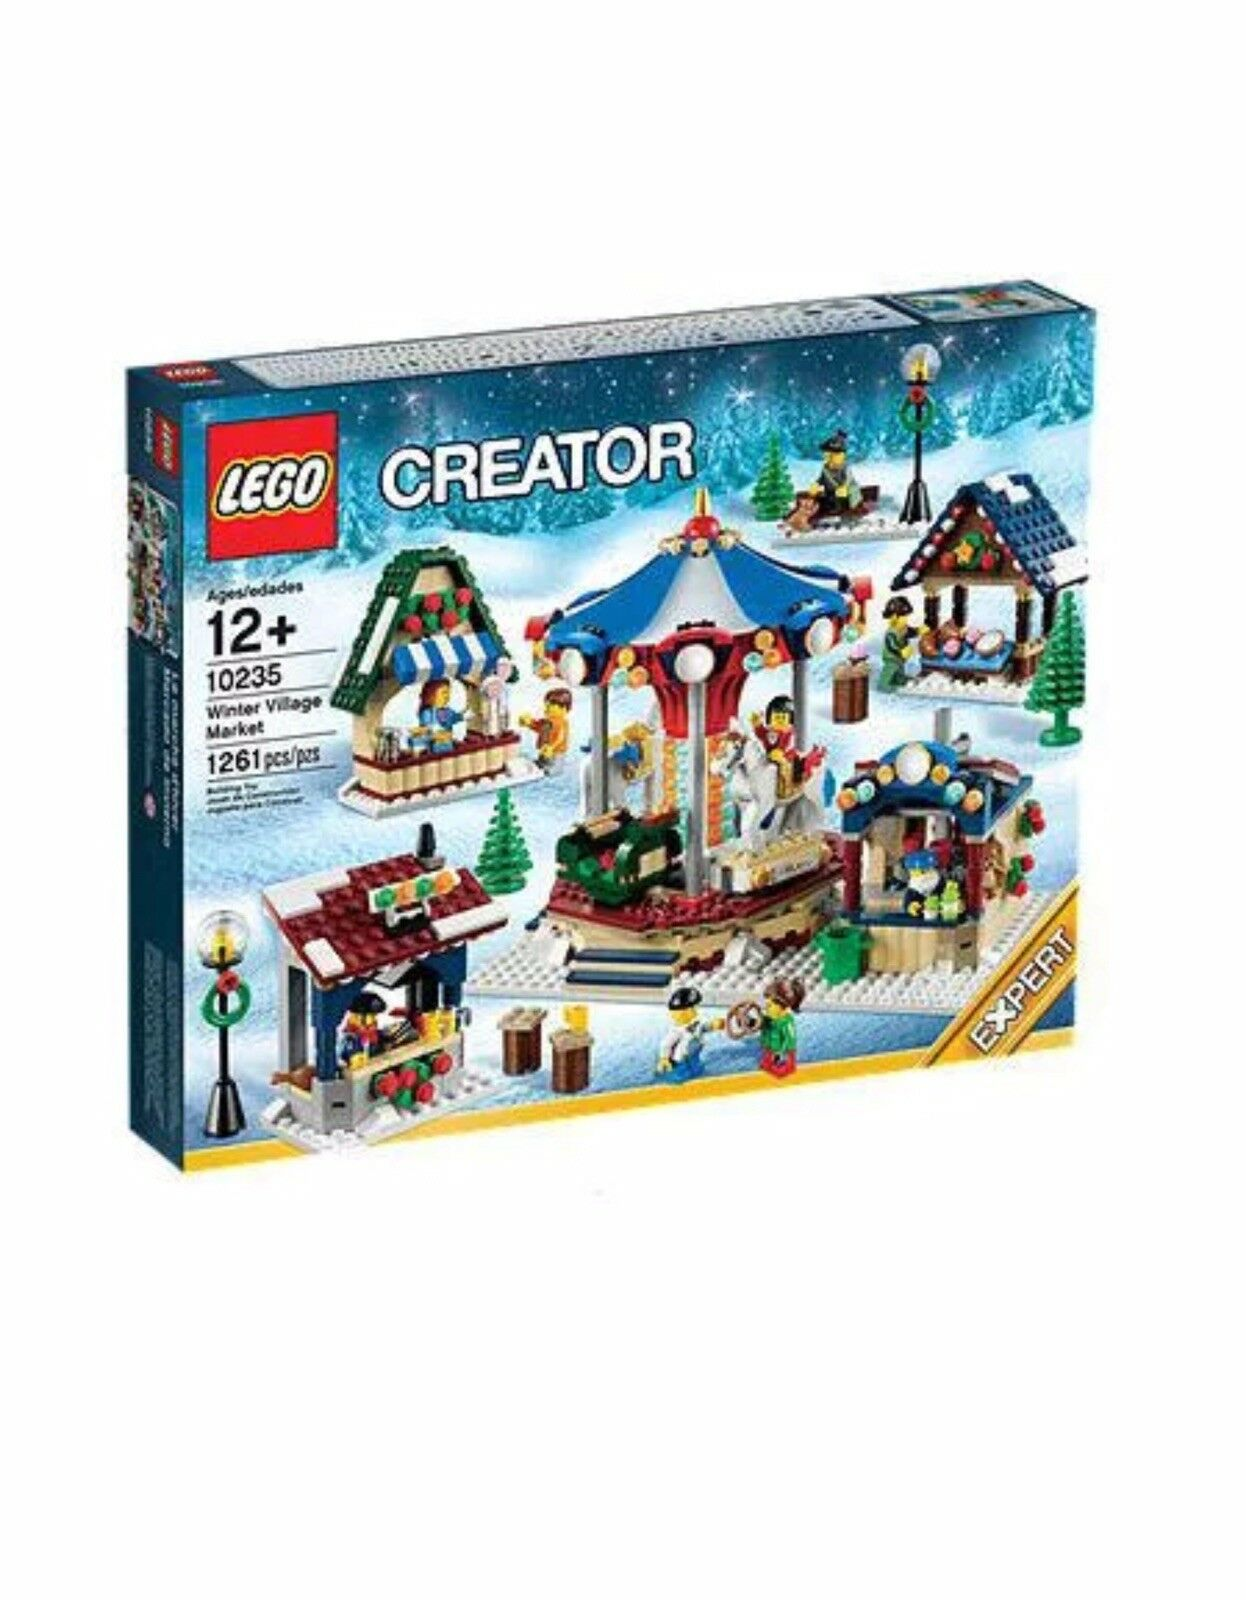 LEGO Creator 10235 Winter Village Market  nouveau Sealed Retirouge  préférentiel